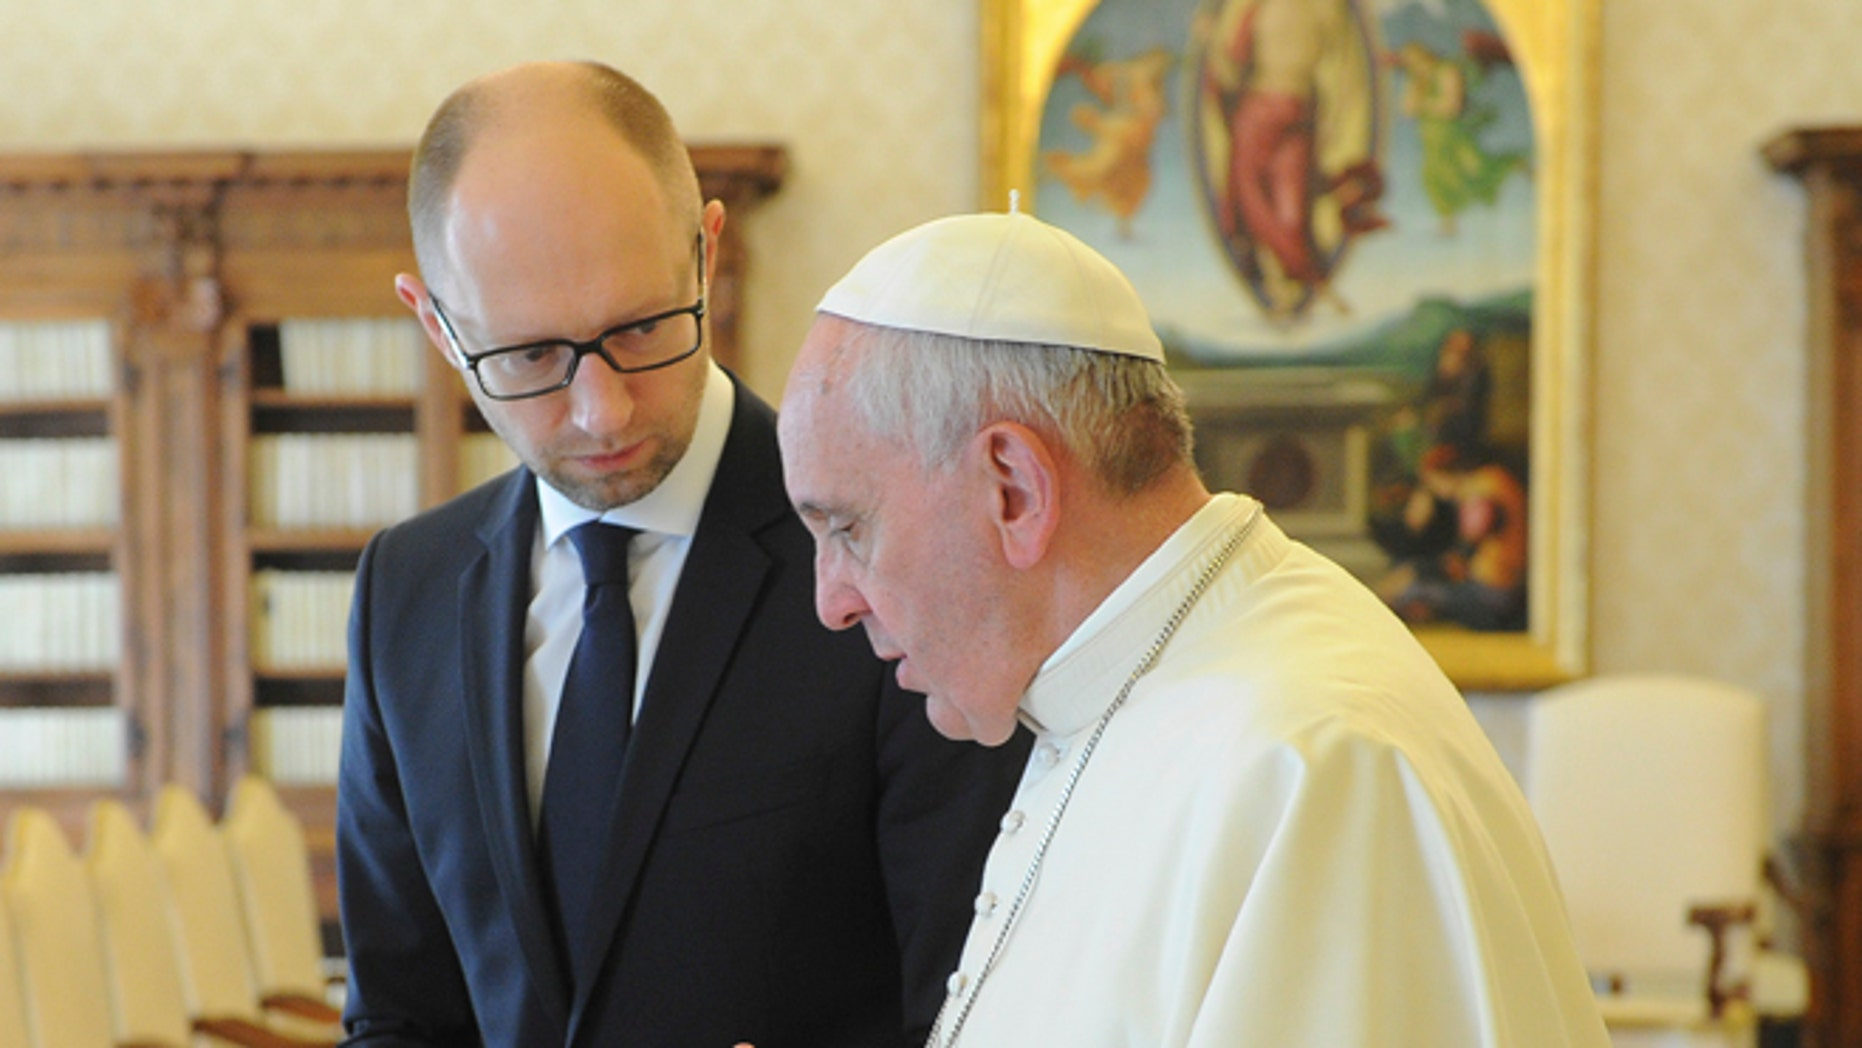 Ukrainian Prime Minister Arseny Yatsenyuk, left, listens to Pope Francis on the occasion of their private audience at the Vatican, Saturday, April 26, 2014. Yatsenyuk is in Rome to attend Sunday's canonization ceremony for John Paul II and John XXIII where Pope Francis will elevate the two popes to sainthood. (AP Photo/Andrew Kravchenko, Pool)